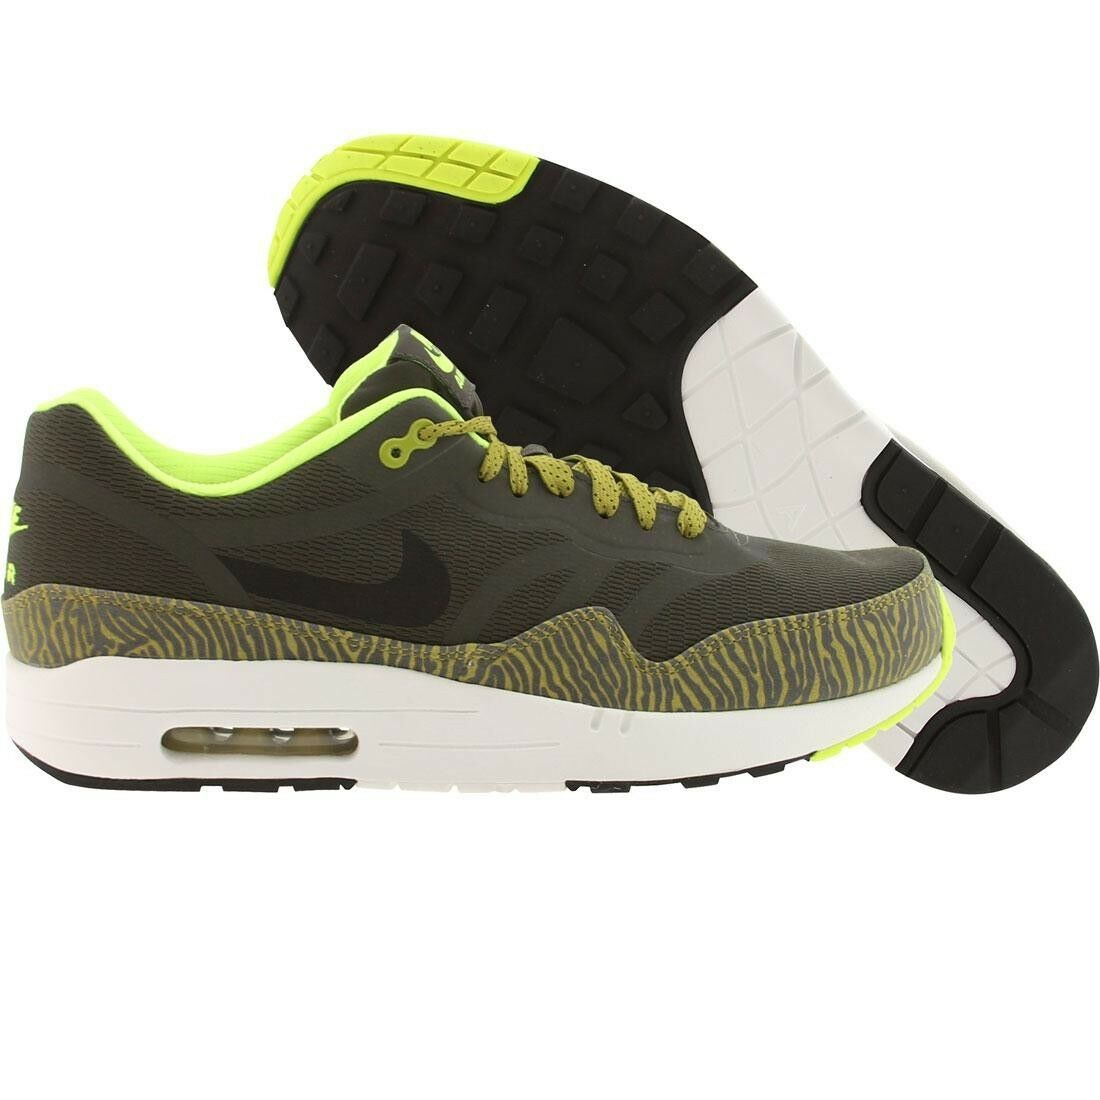 Special limited time 599514-007 Nike Men Air Max 1 Premium Tape (nwsprnt / black / prcht gld / smmt w